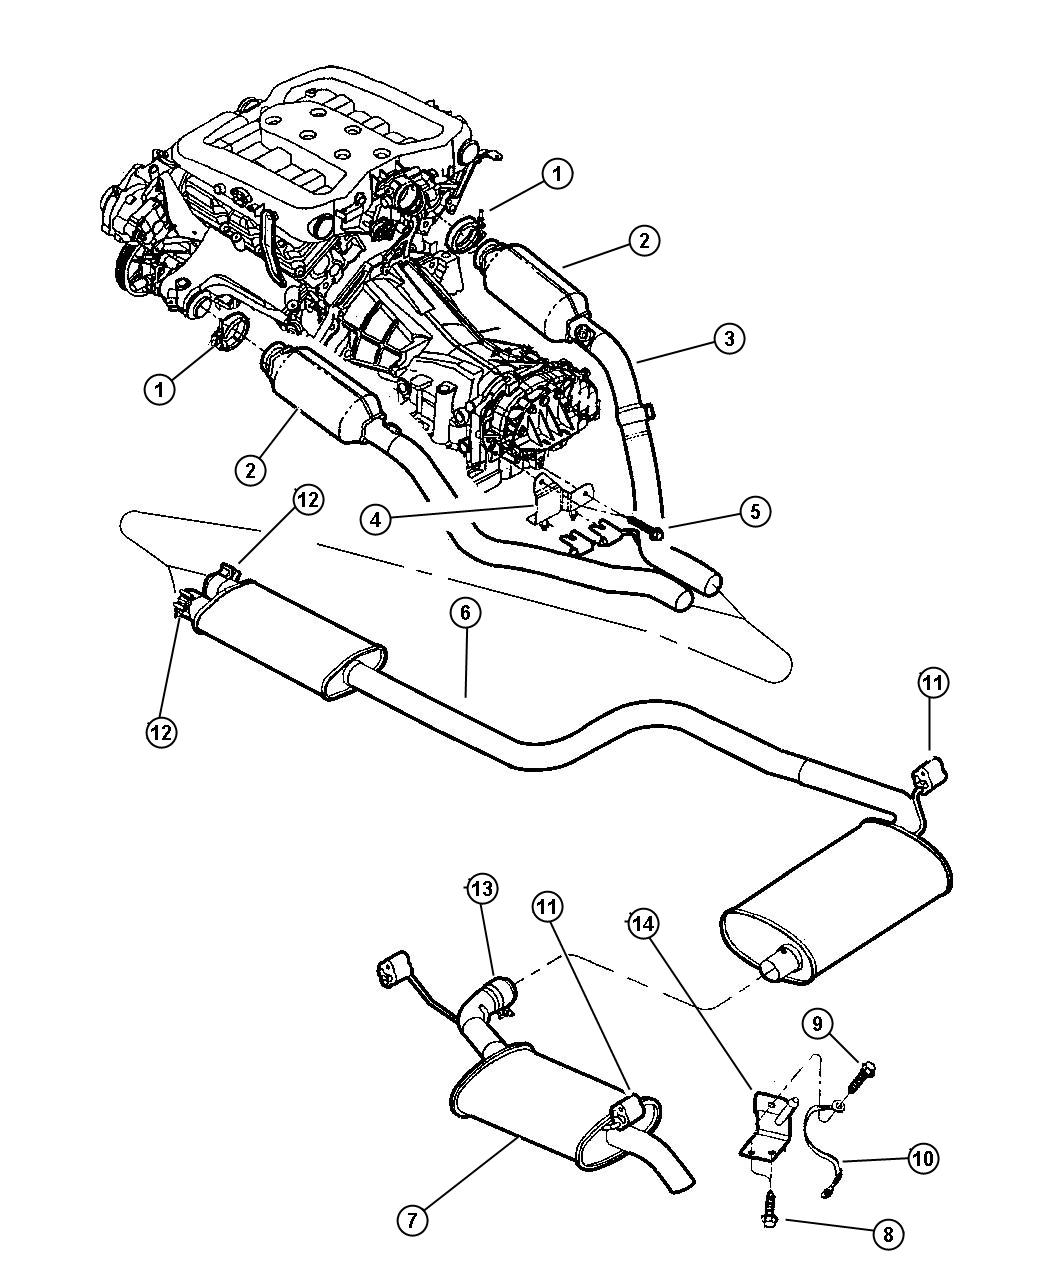 1999 chrysler 300m module diagram  1999  free engine image